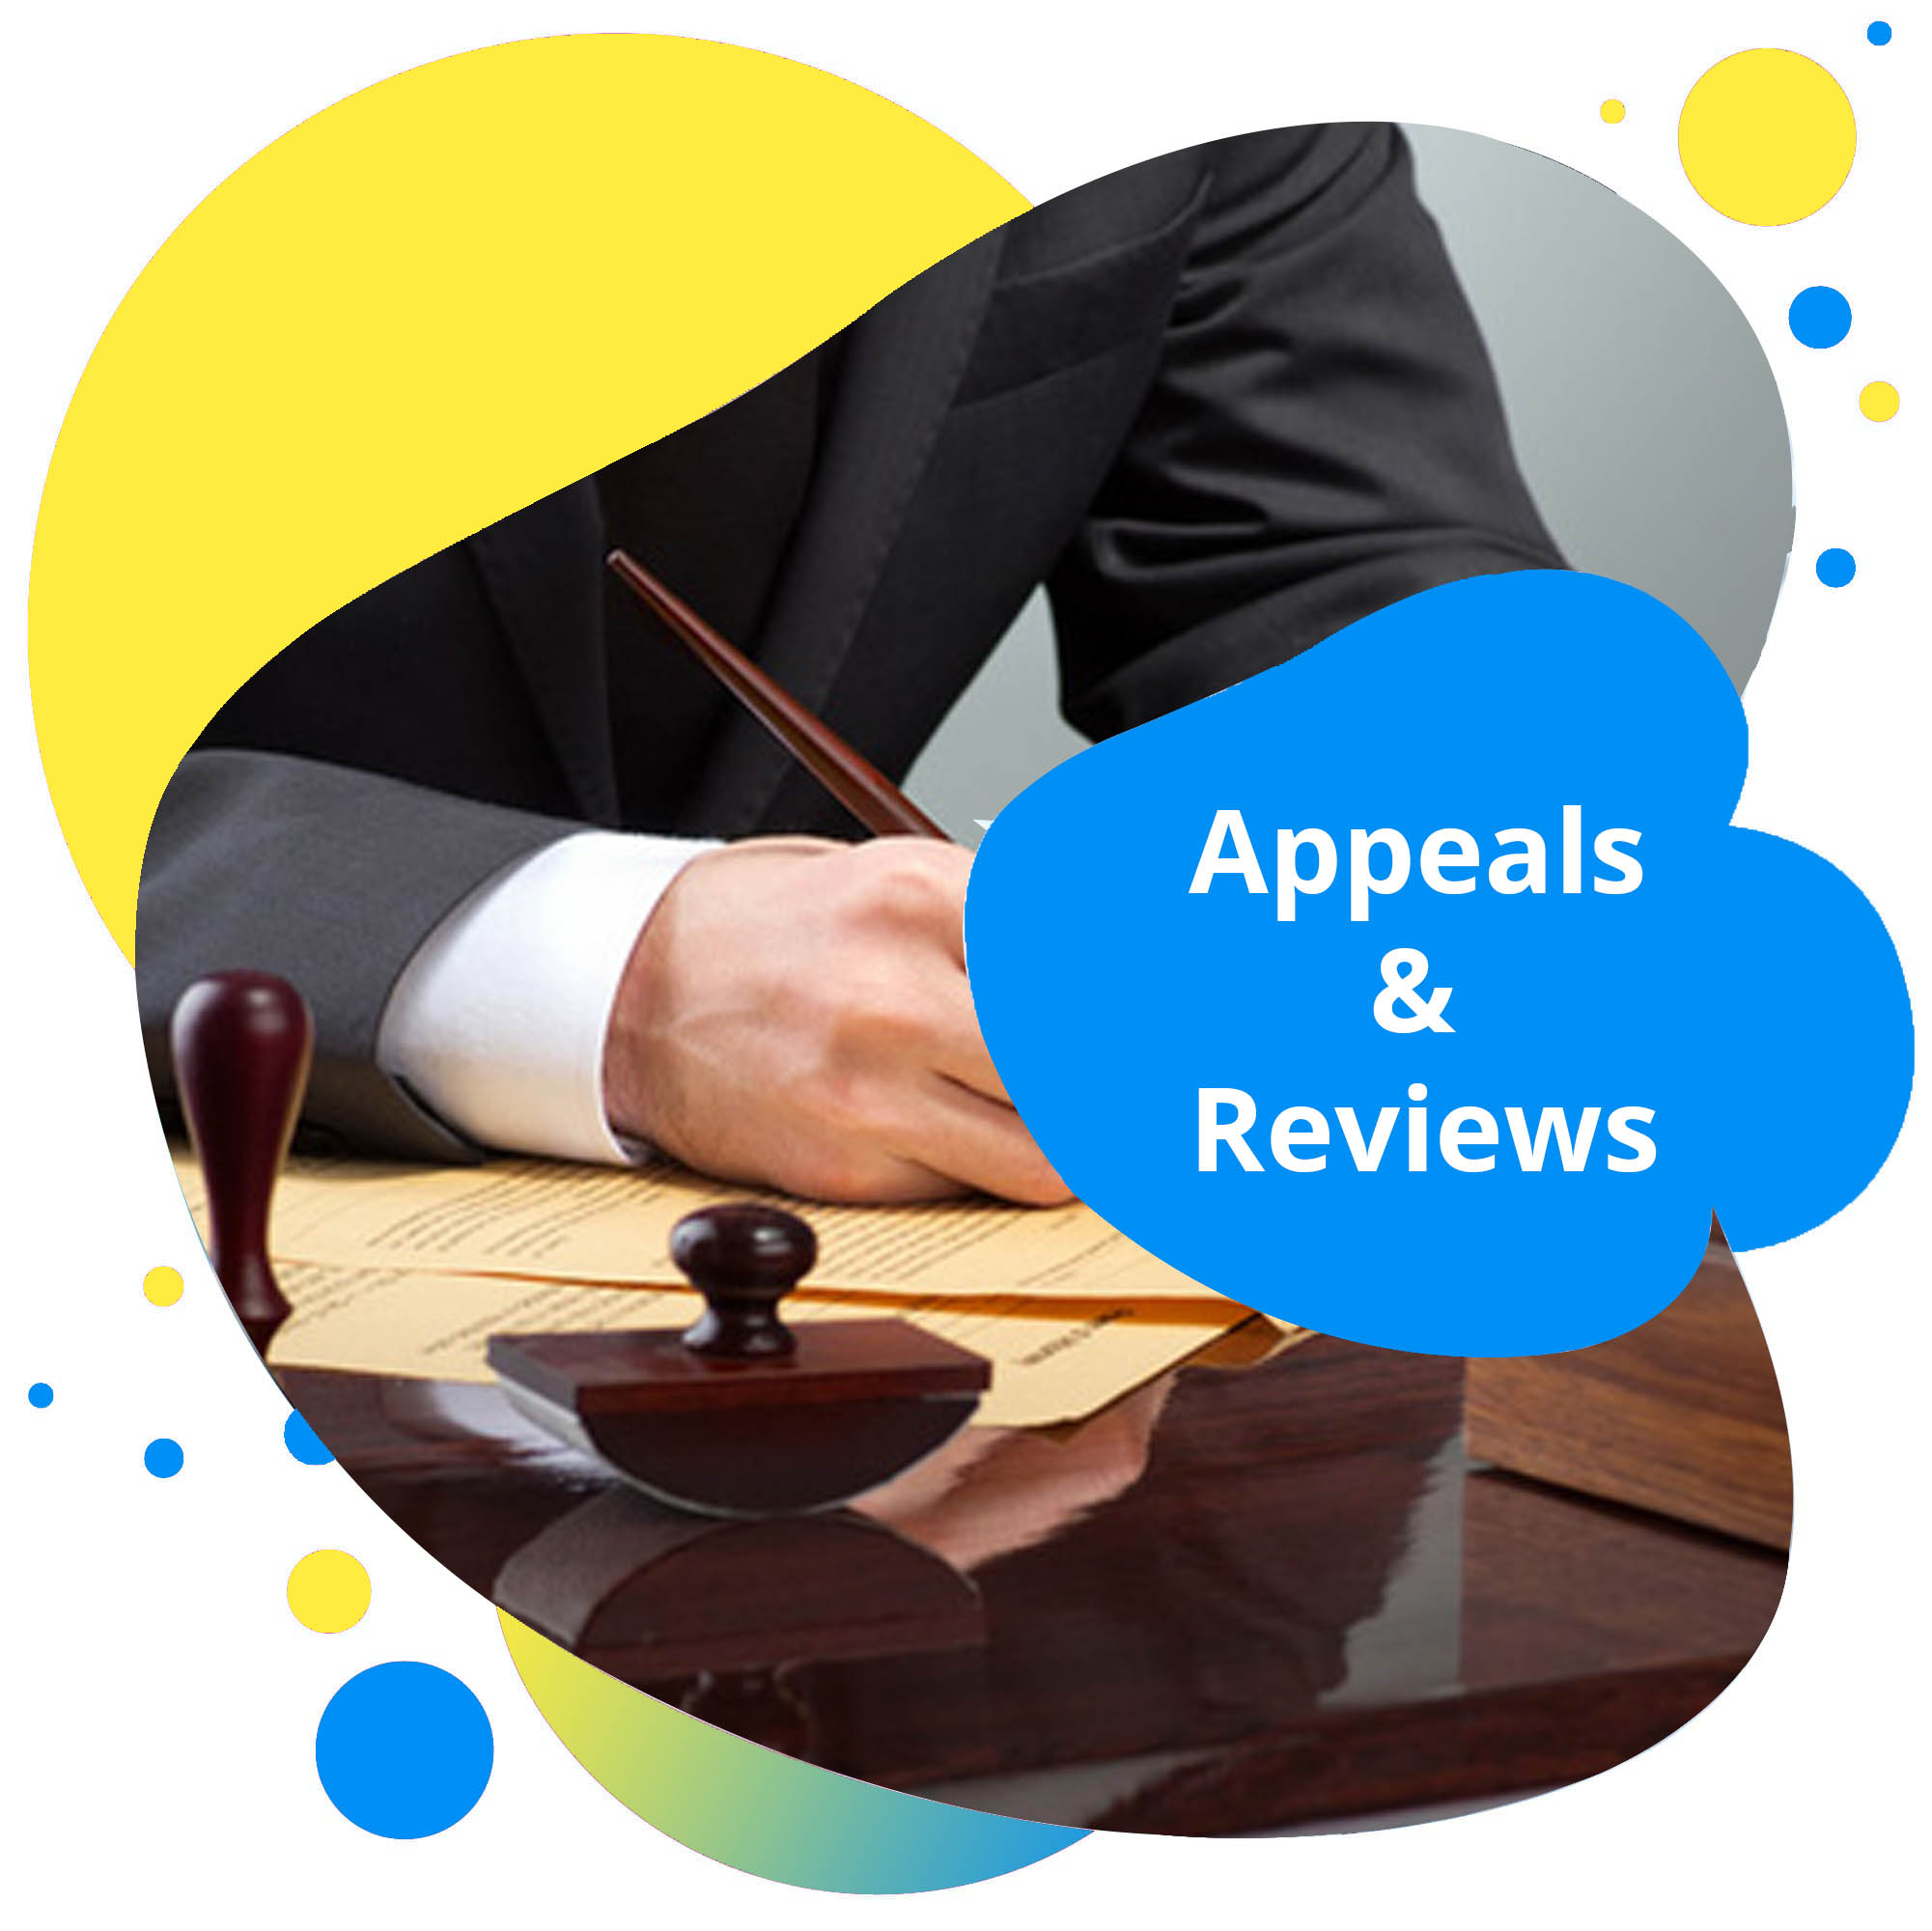 Appeals and Reviews